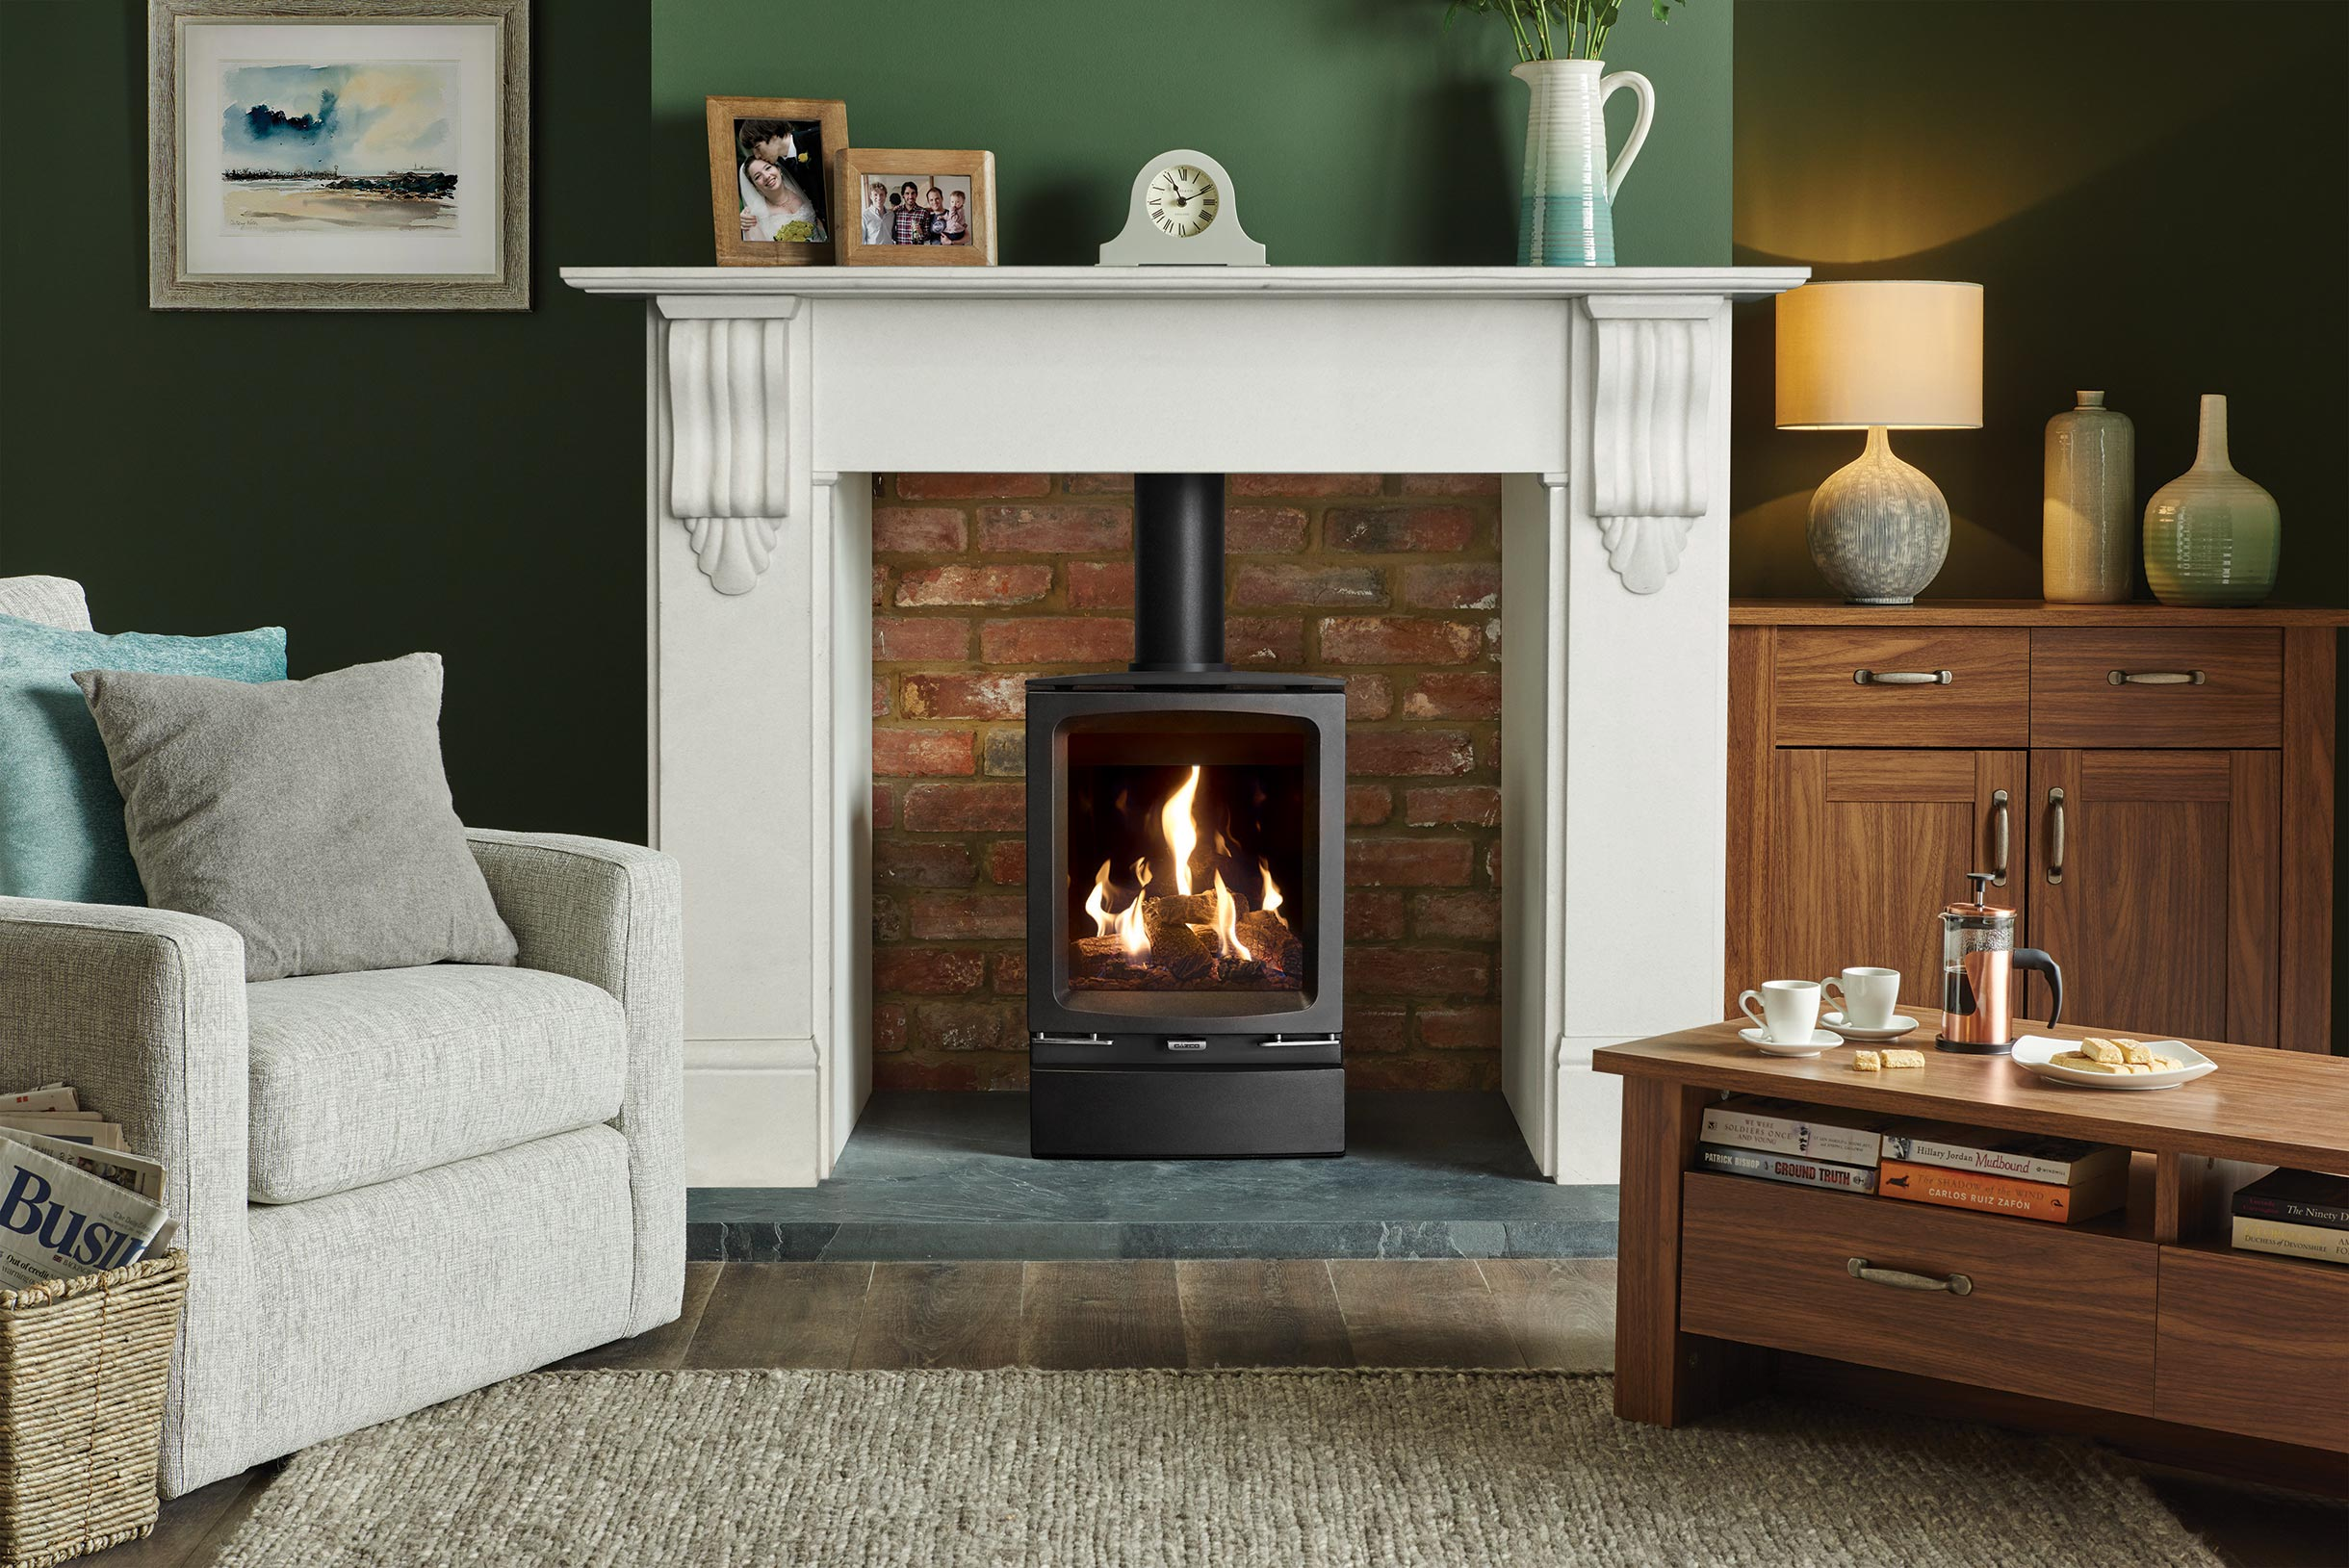 Gazco Vogue Gas Stove